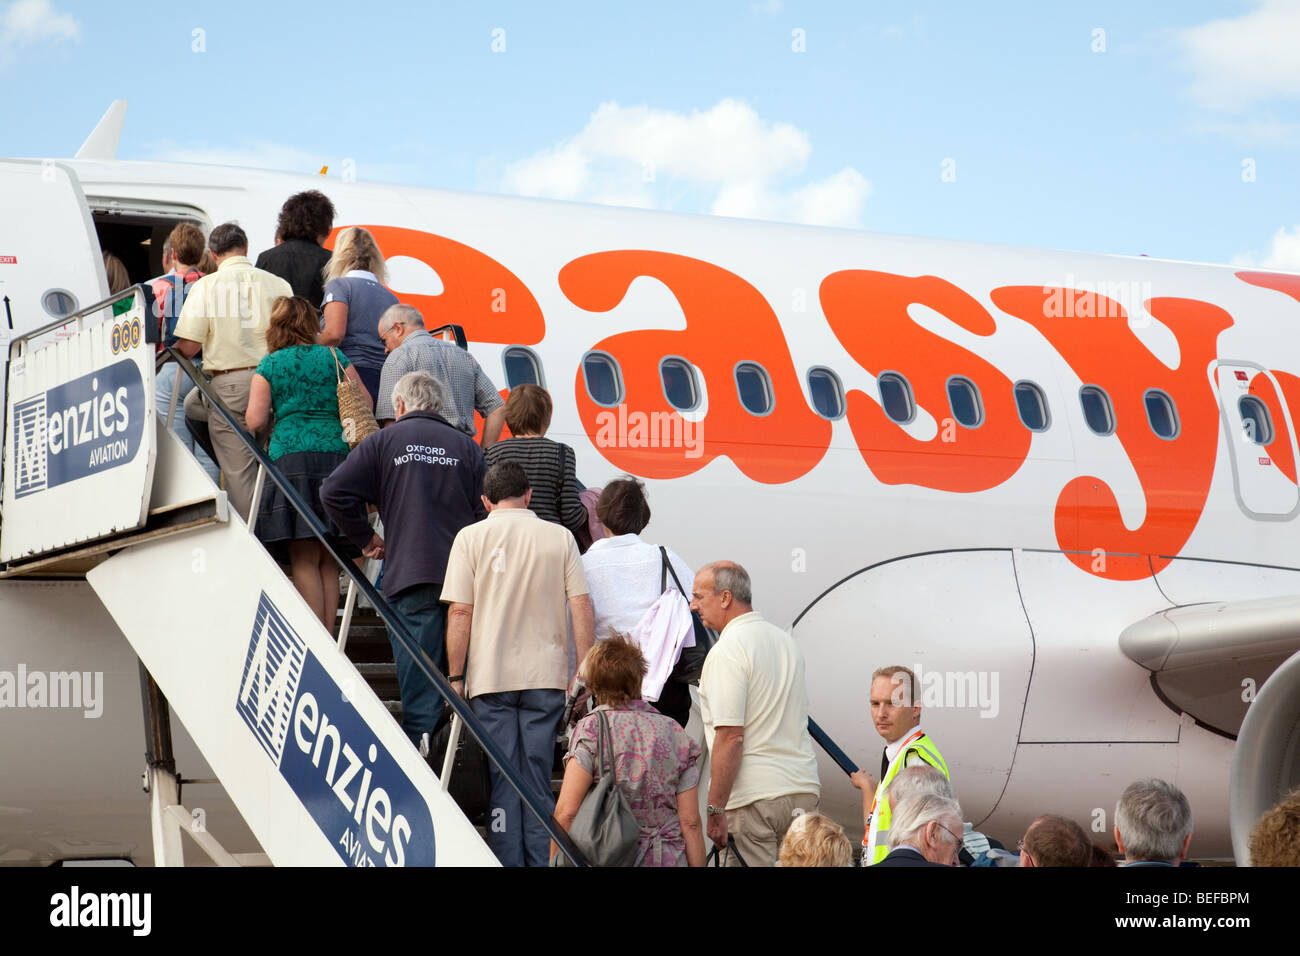 Passengers boarding an Easyjet plane at Stansted airport, UK - Stock Image